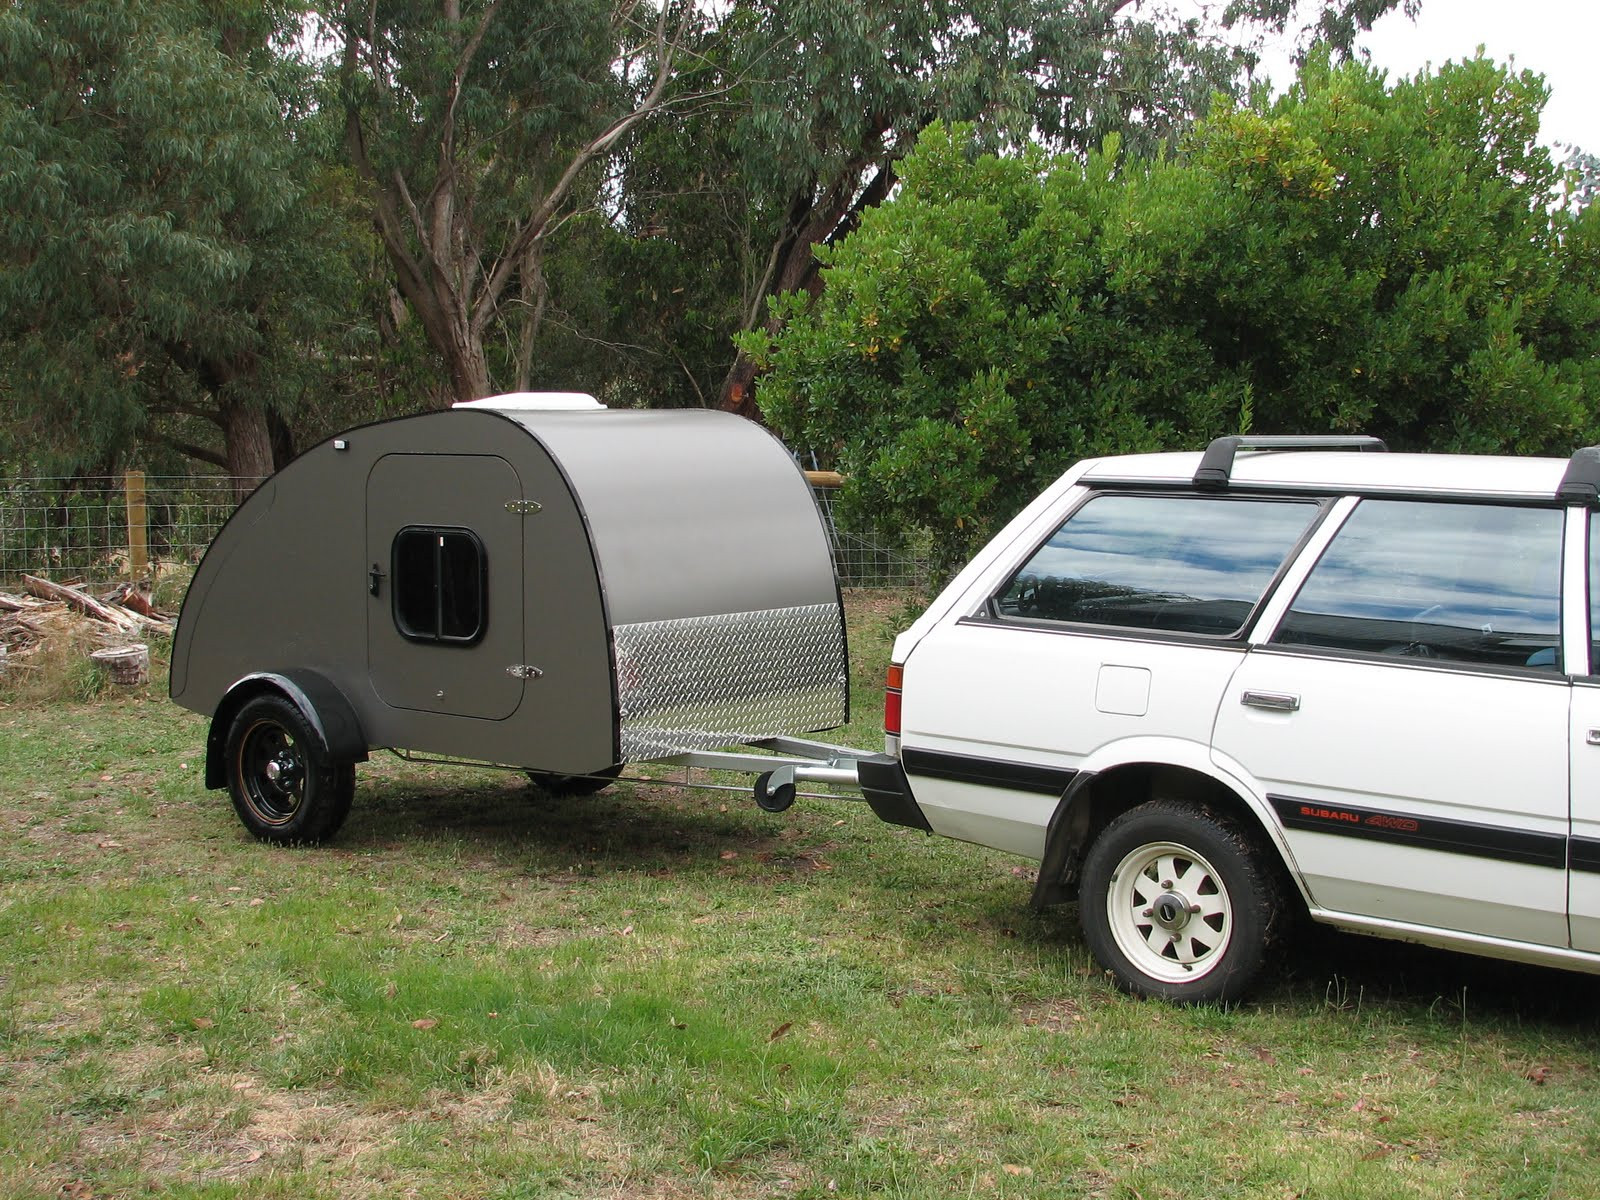 Best ideas about DIY Camper Trailer Kits . Save or Pin NYECAM cnc routing TEARDROP CAMPER KITS Now.